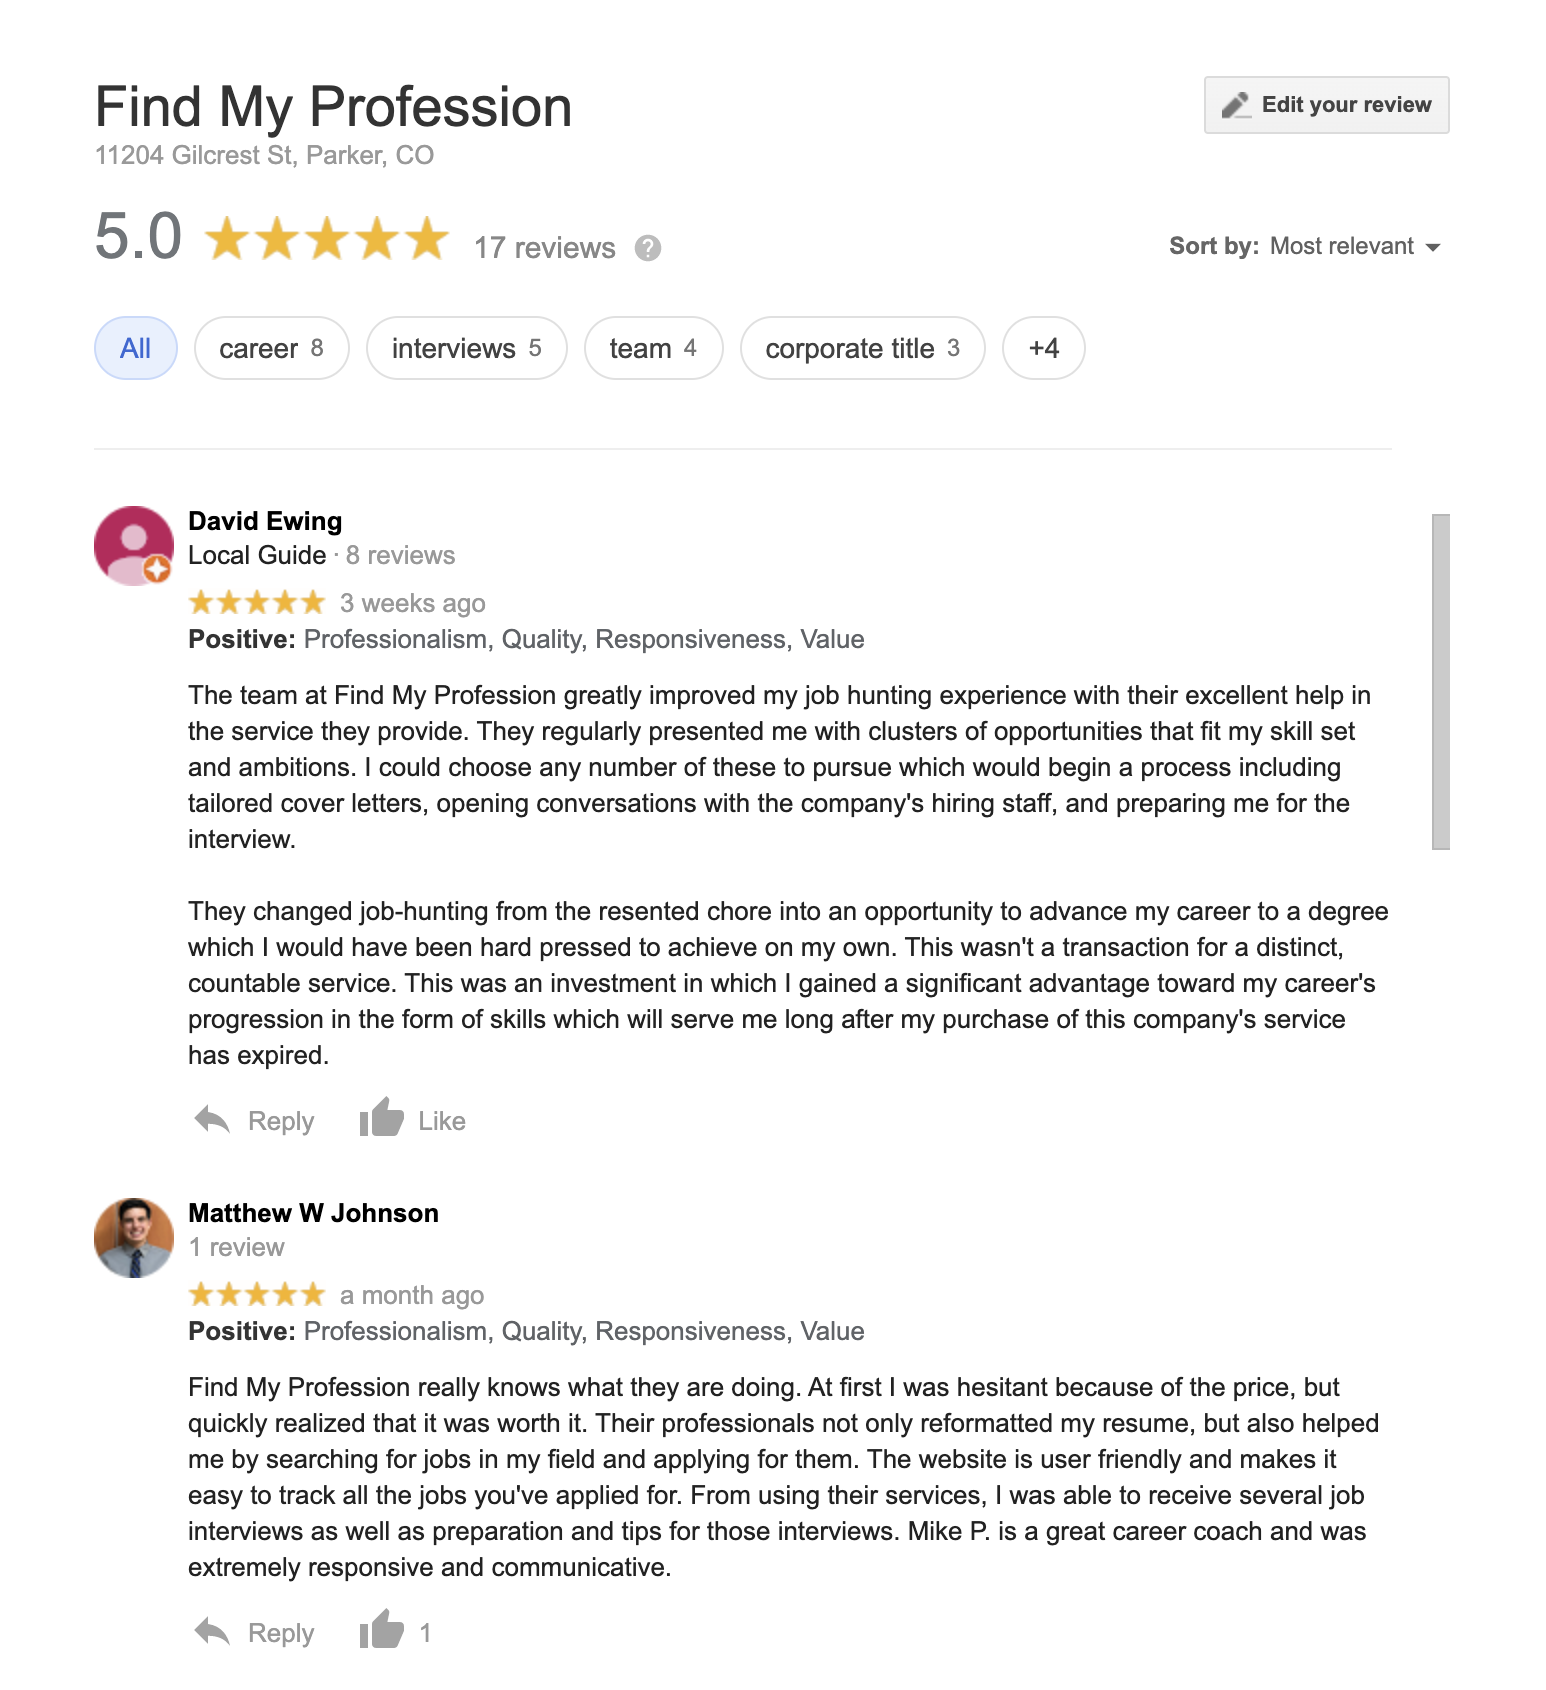 Find My Profession Google Reviews